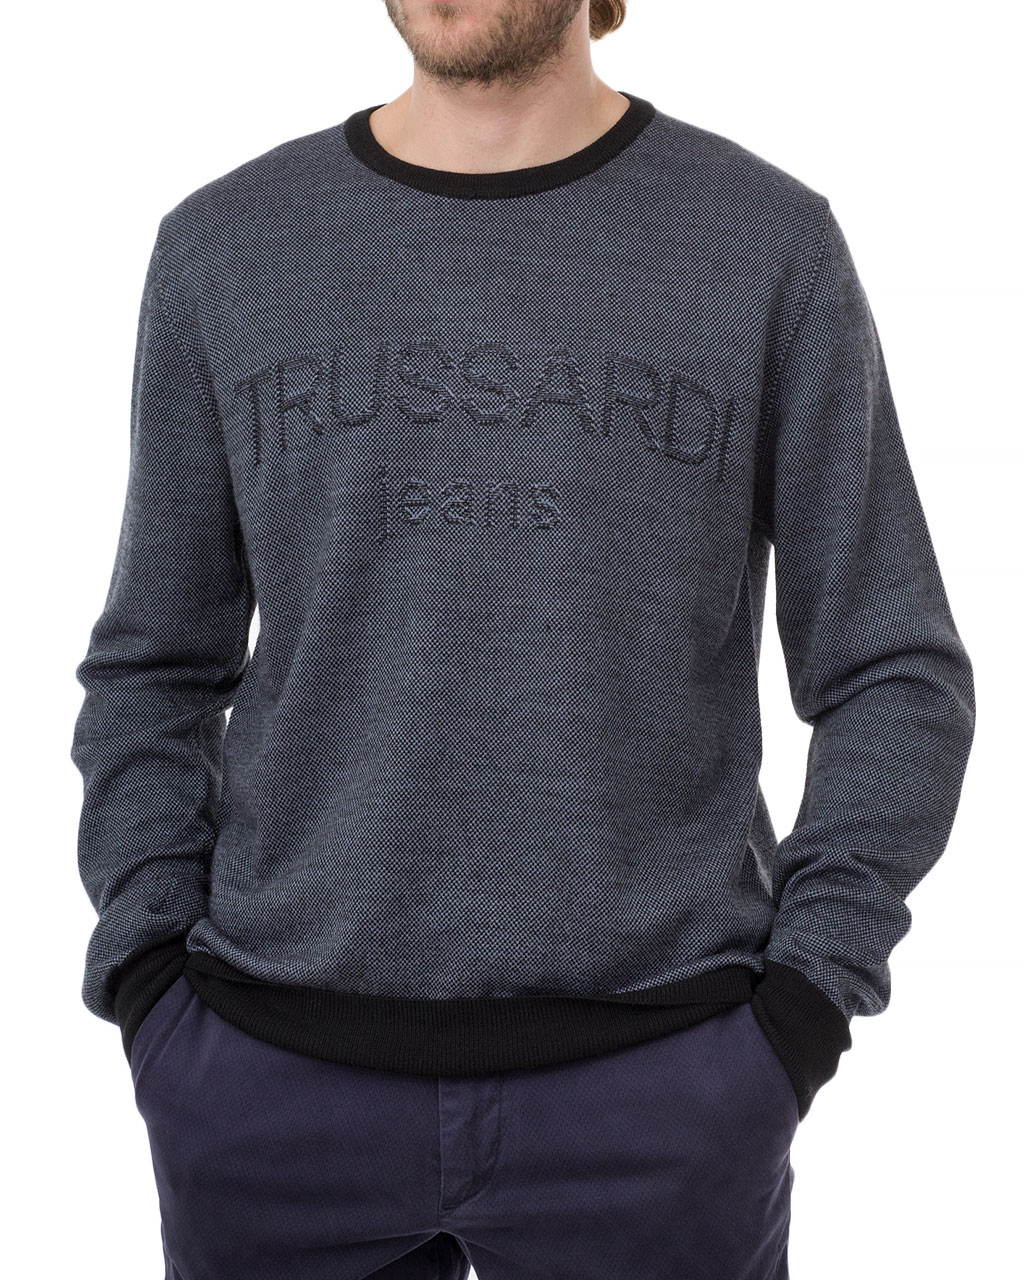 Men's jumper 52M00241-OF000428-U290/19-20 (6)